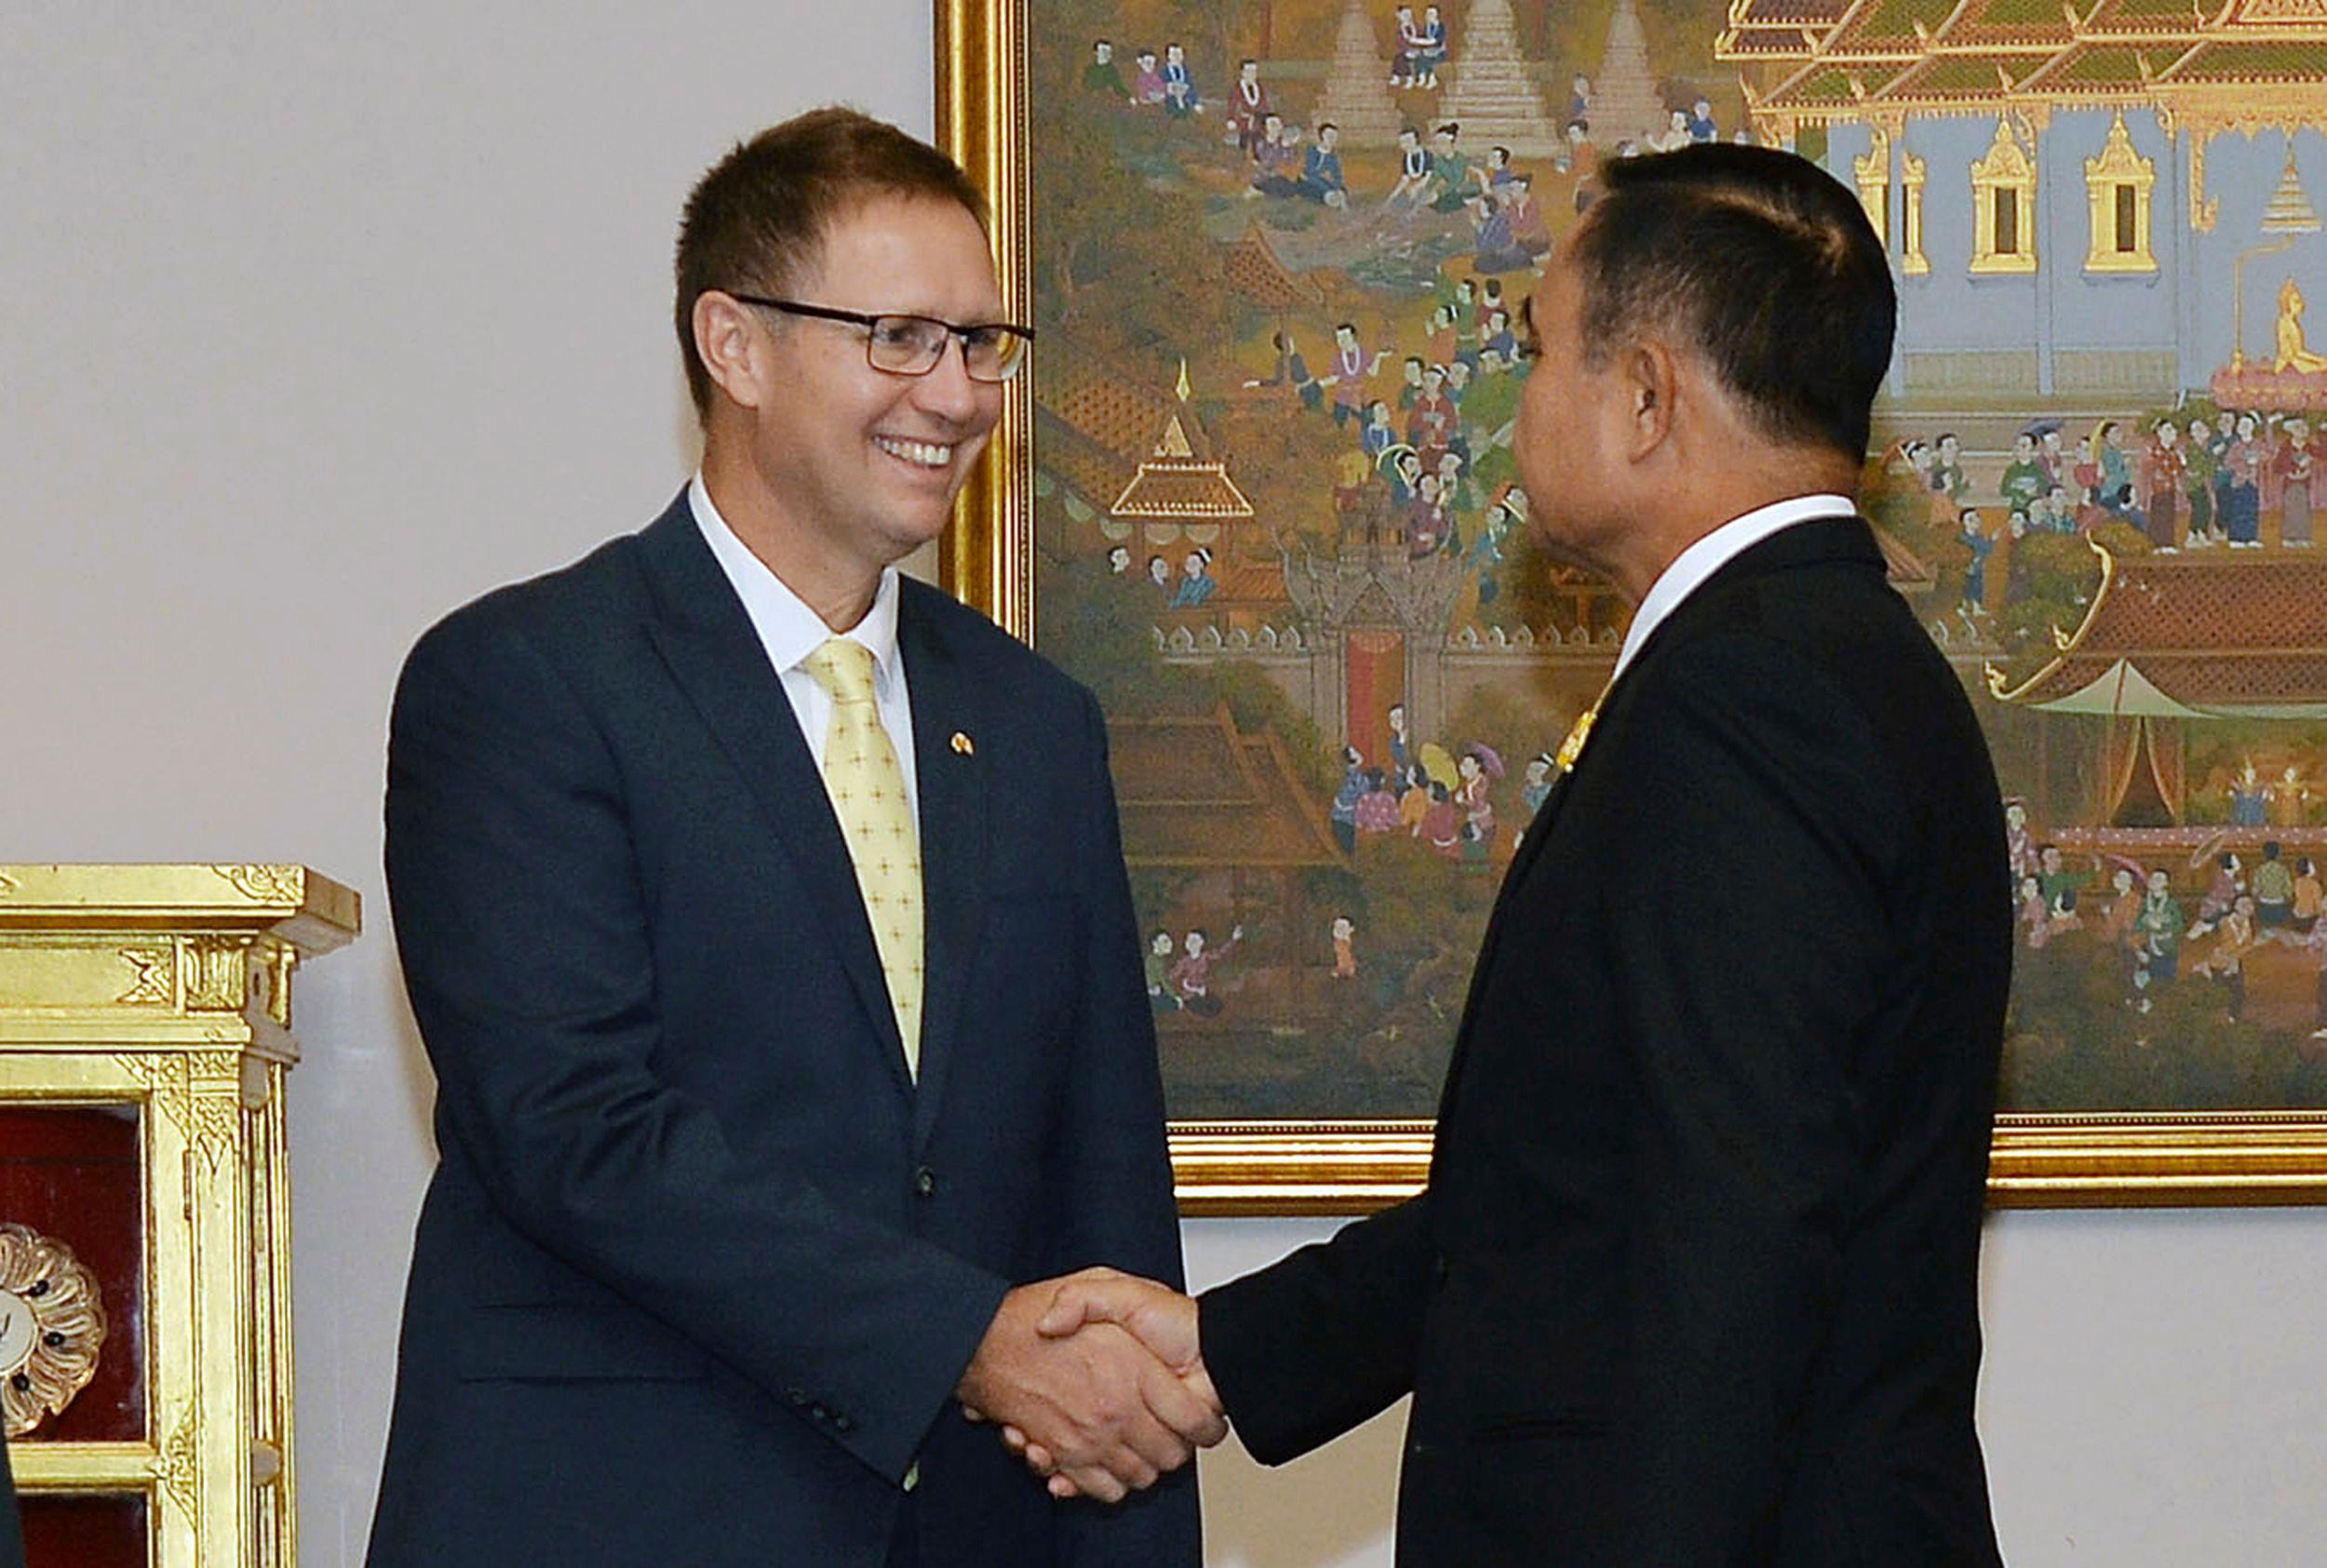 In this photo released by Government Spokesman Office, Richard Harris, left, an Australian member of the Thai cave rescue team, shakes hands with Thailand's Prime Minister Prayuth Chan-ocha after receiving the Member of the Most Admirable Order of the Direkgunabhorn during the royal decoration ceremony at the Royal Thai Government House in Bangkok, Thailand, Friday, April 19, 2019. (Government Spokesman Office via AP)